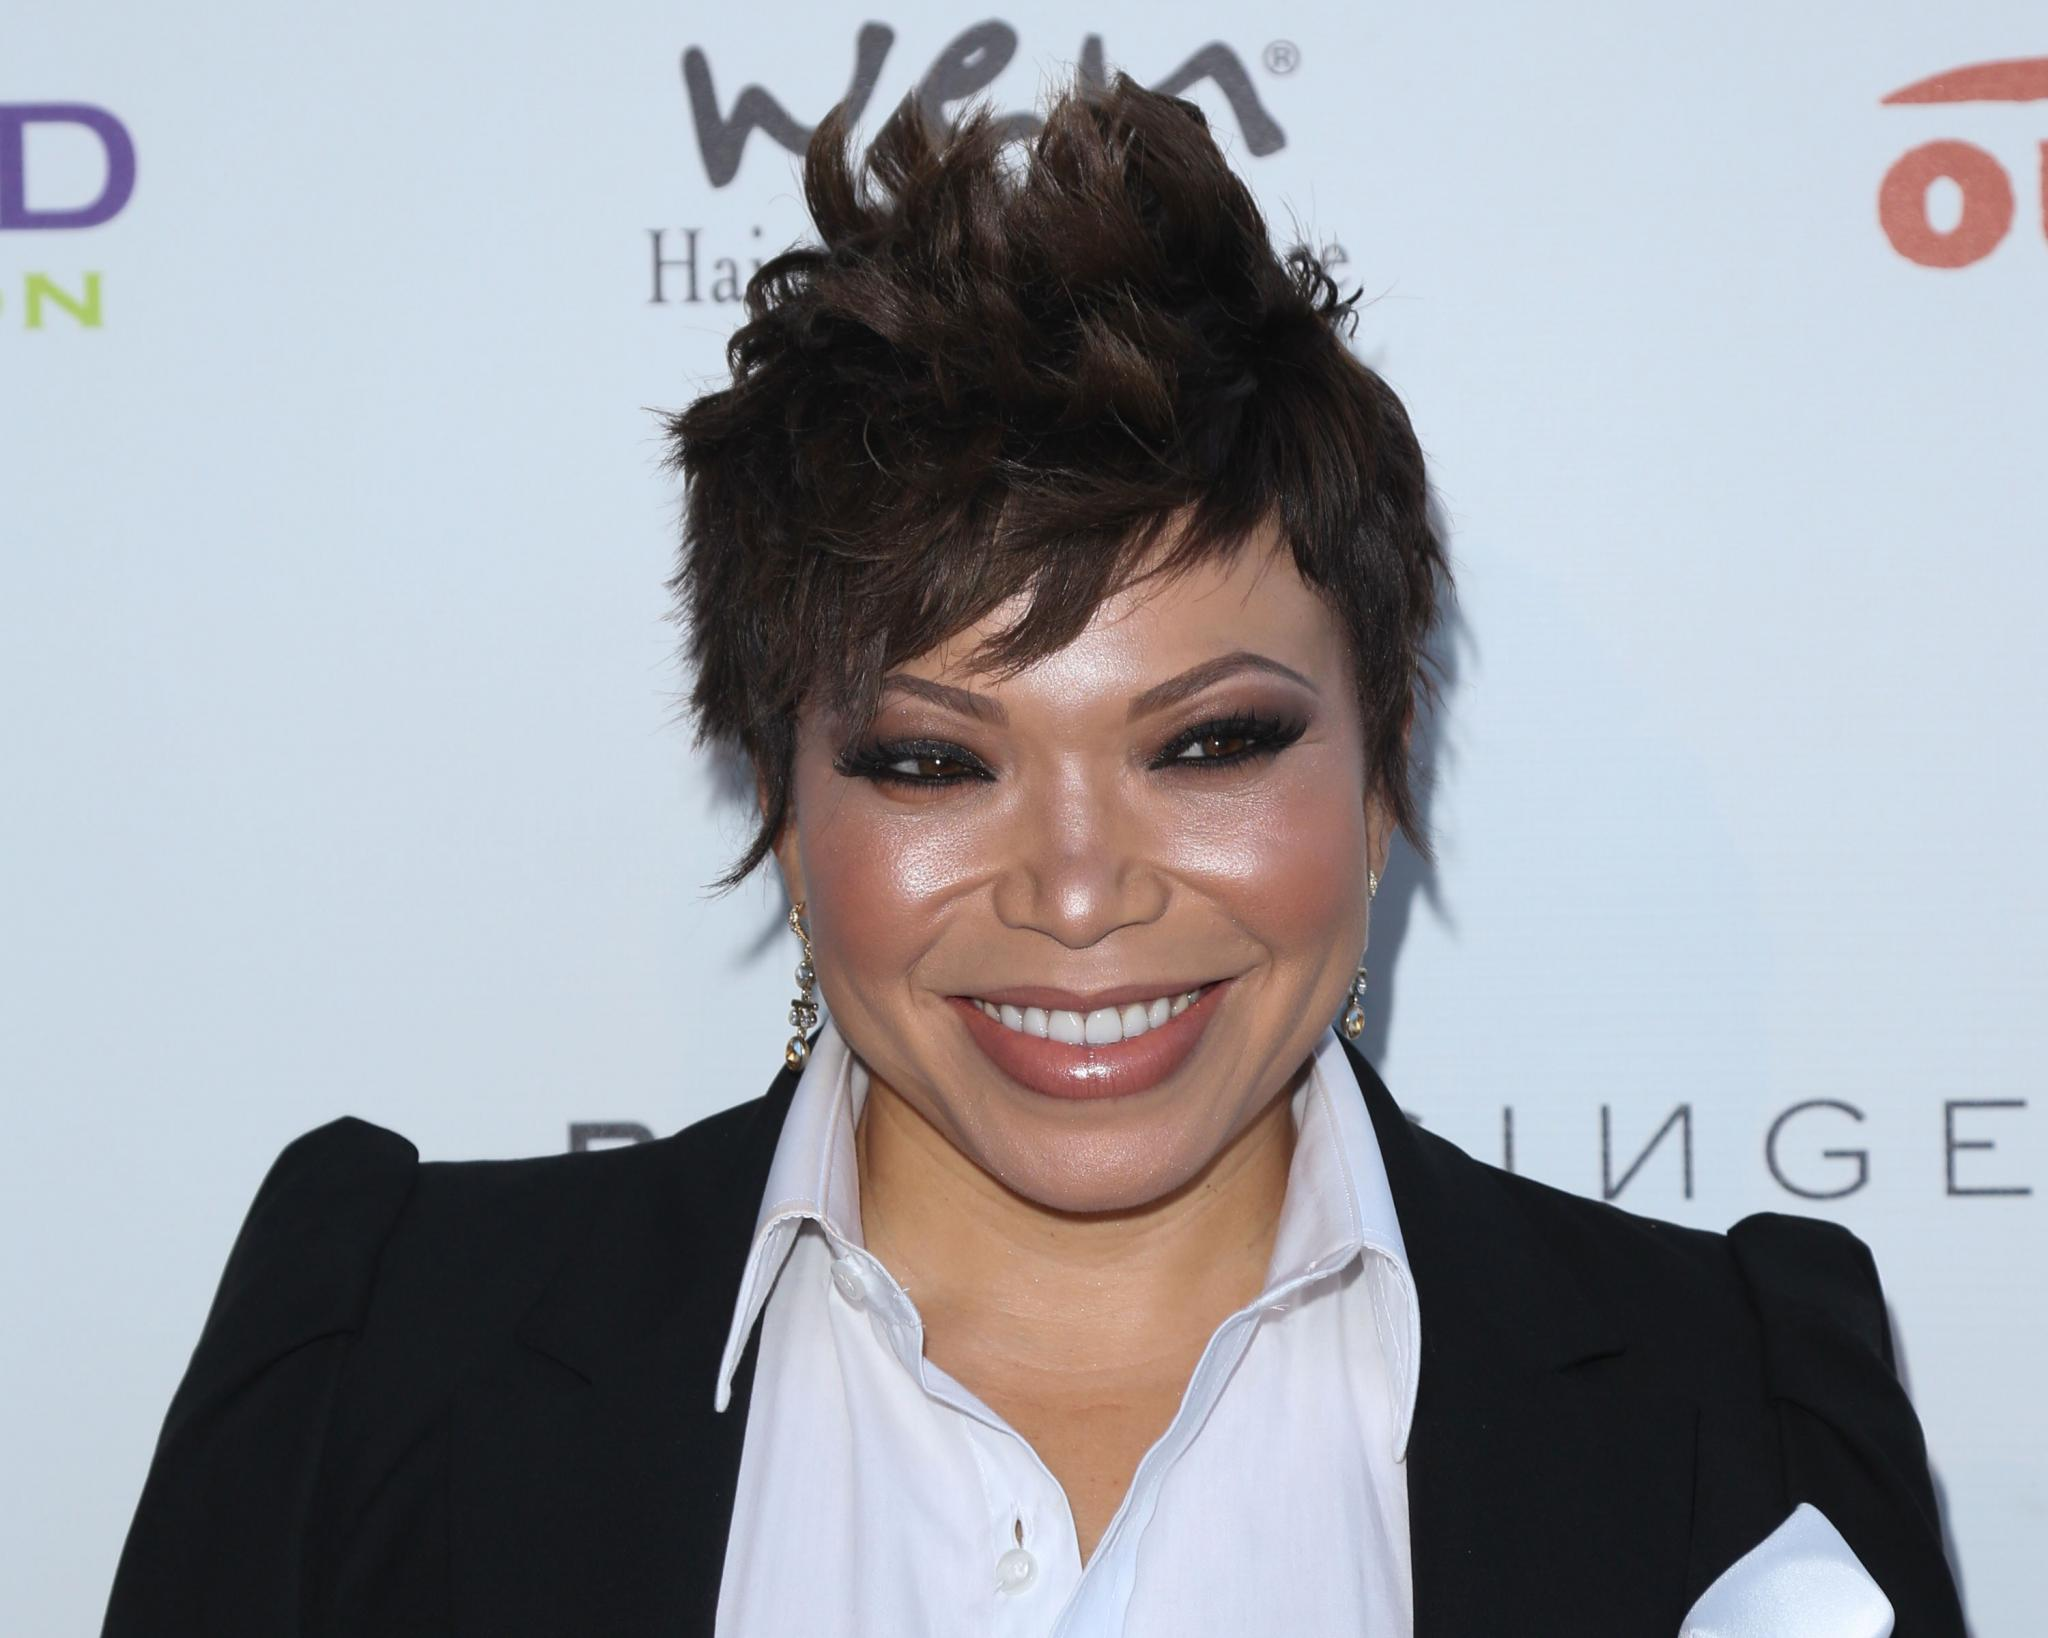 EXCLUSIVE: Tisha Campbell-Martin on Raising Autism Awareness at MegaFest